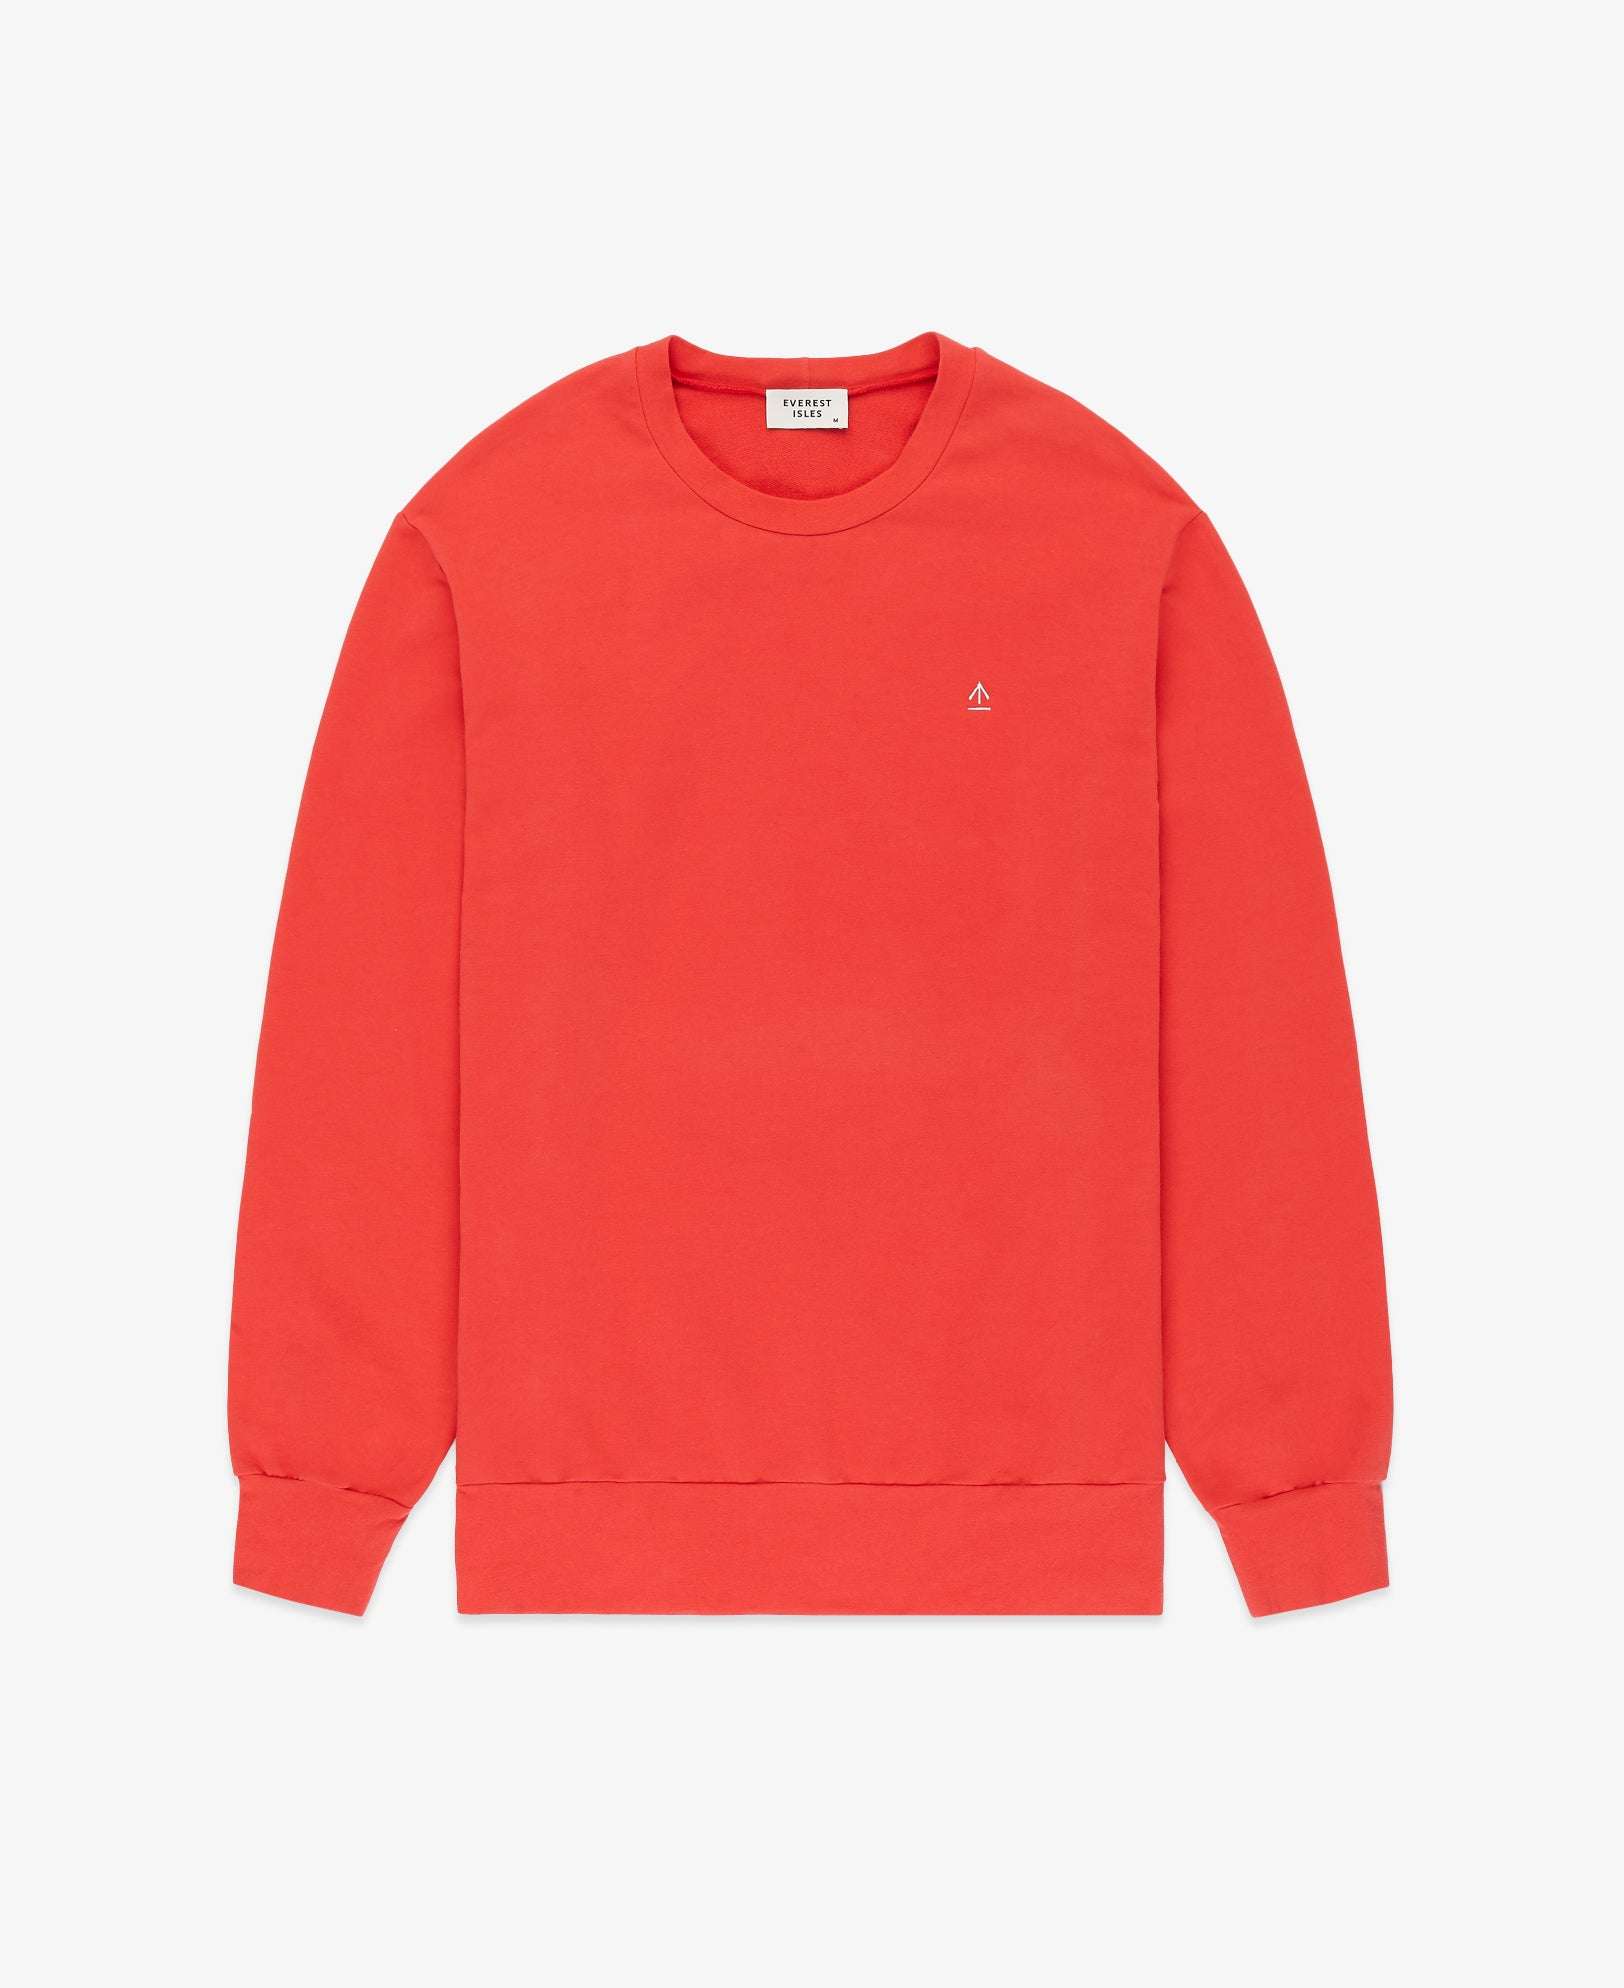 Summer Sweatshirt – Red